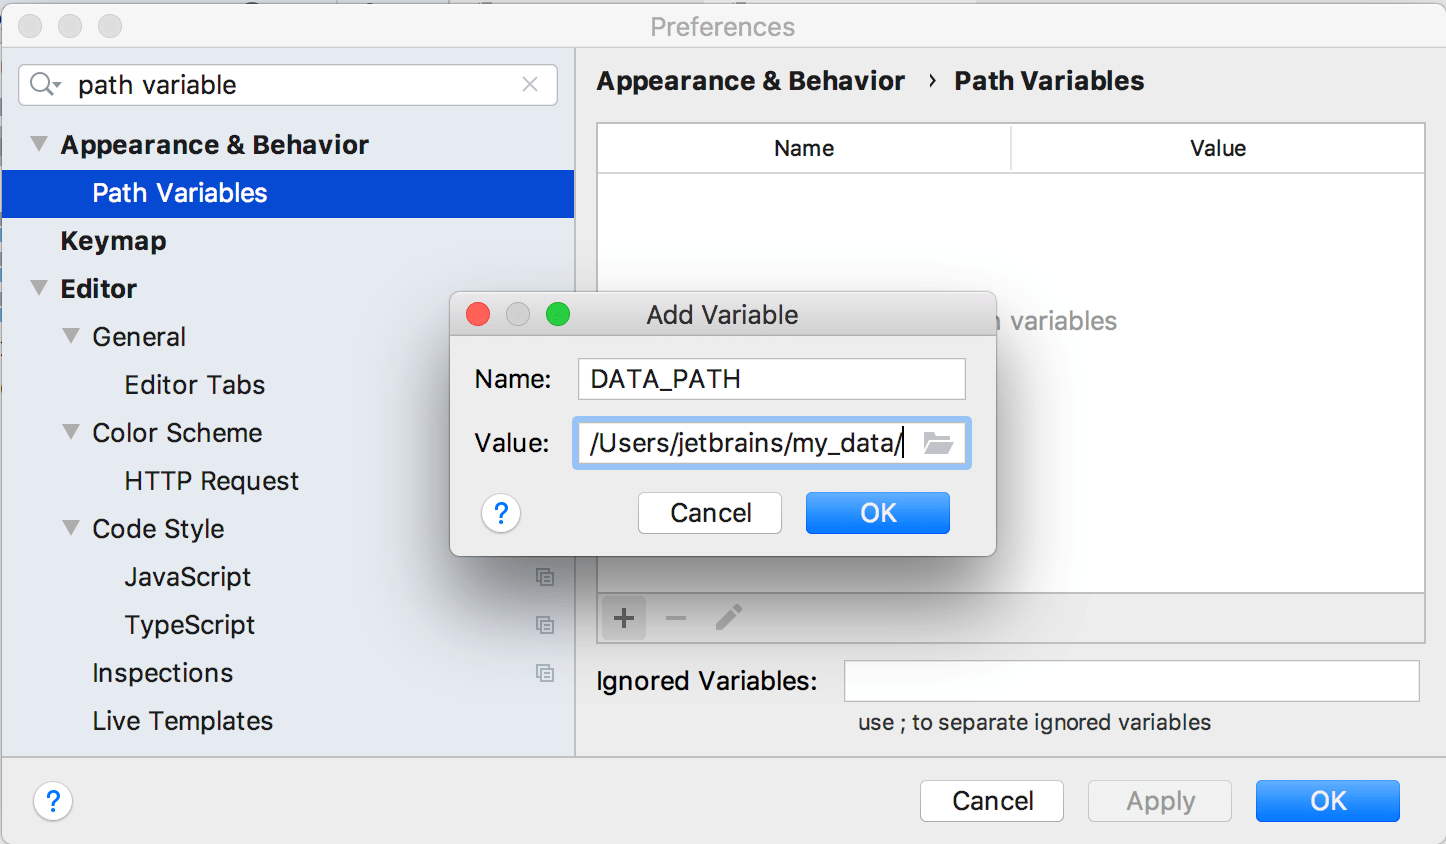 Adding a new path variable